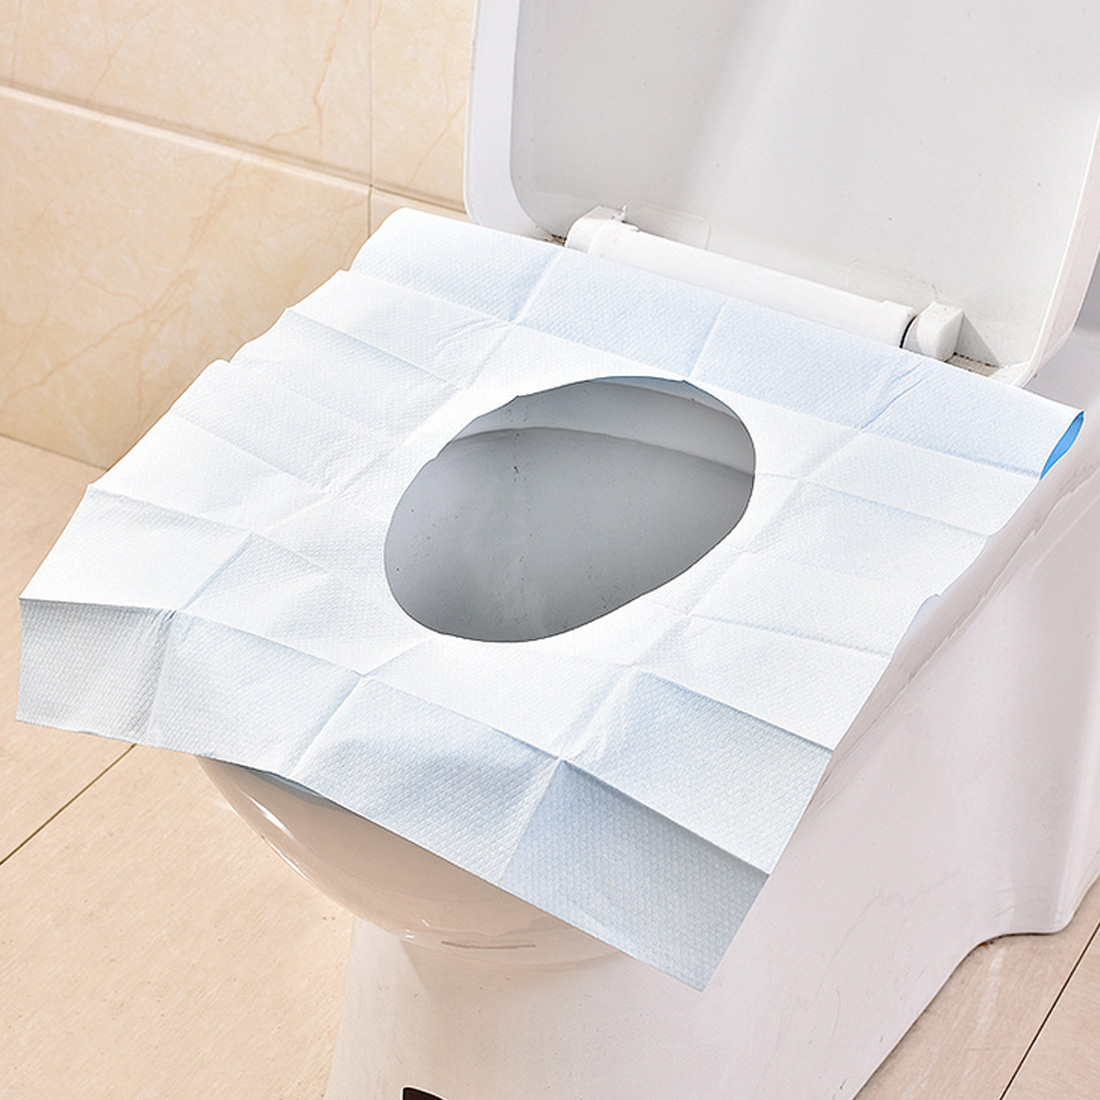 Permalink to Safety Waterproof Disposable Toilet Pad Toilet Seat Cover Mat for Travel Pregnant Women Antibacterial Pad Bathroom Accessories